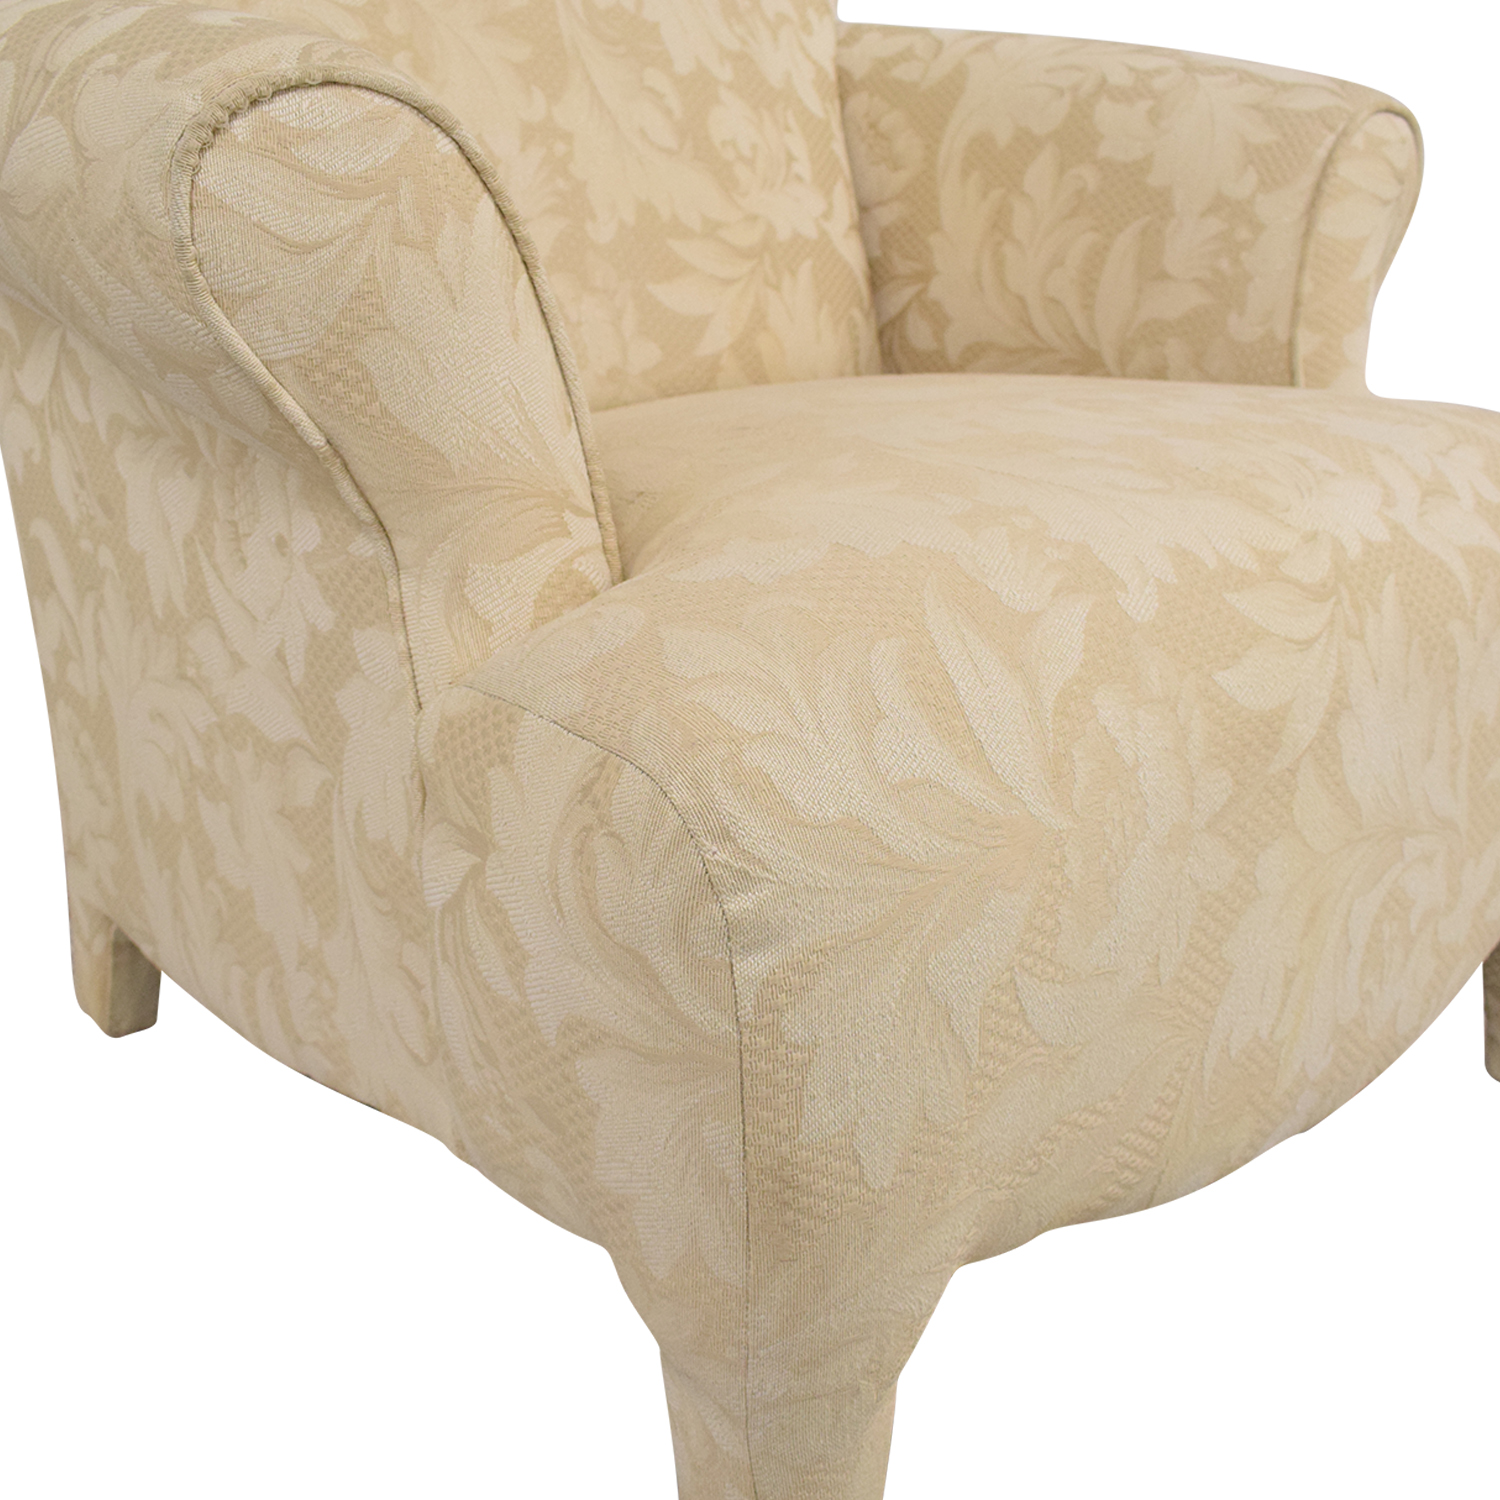 Sealy Sealy Furniture Lounge Chair discount